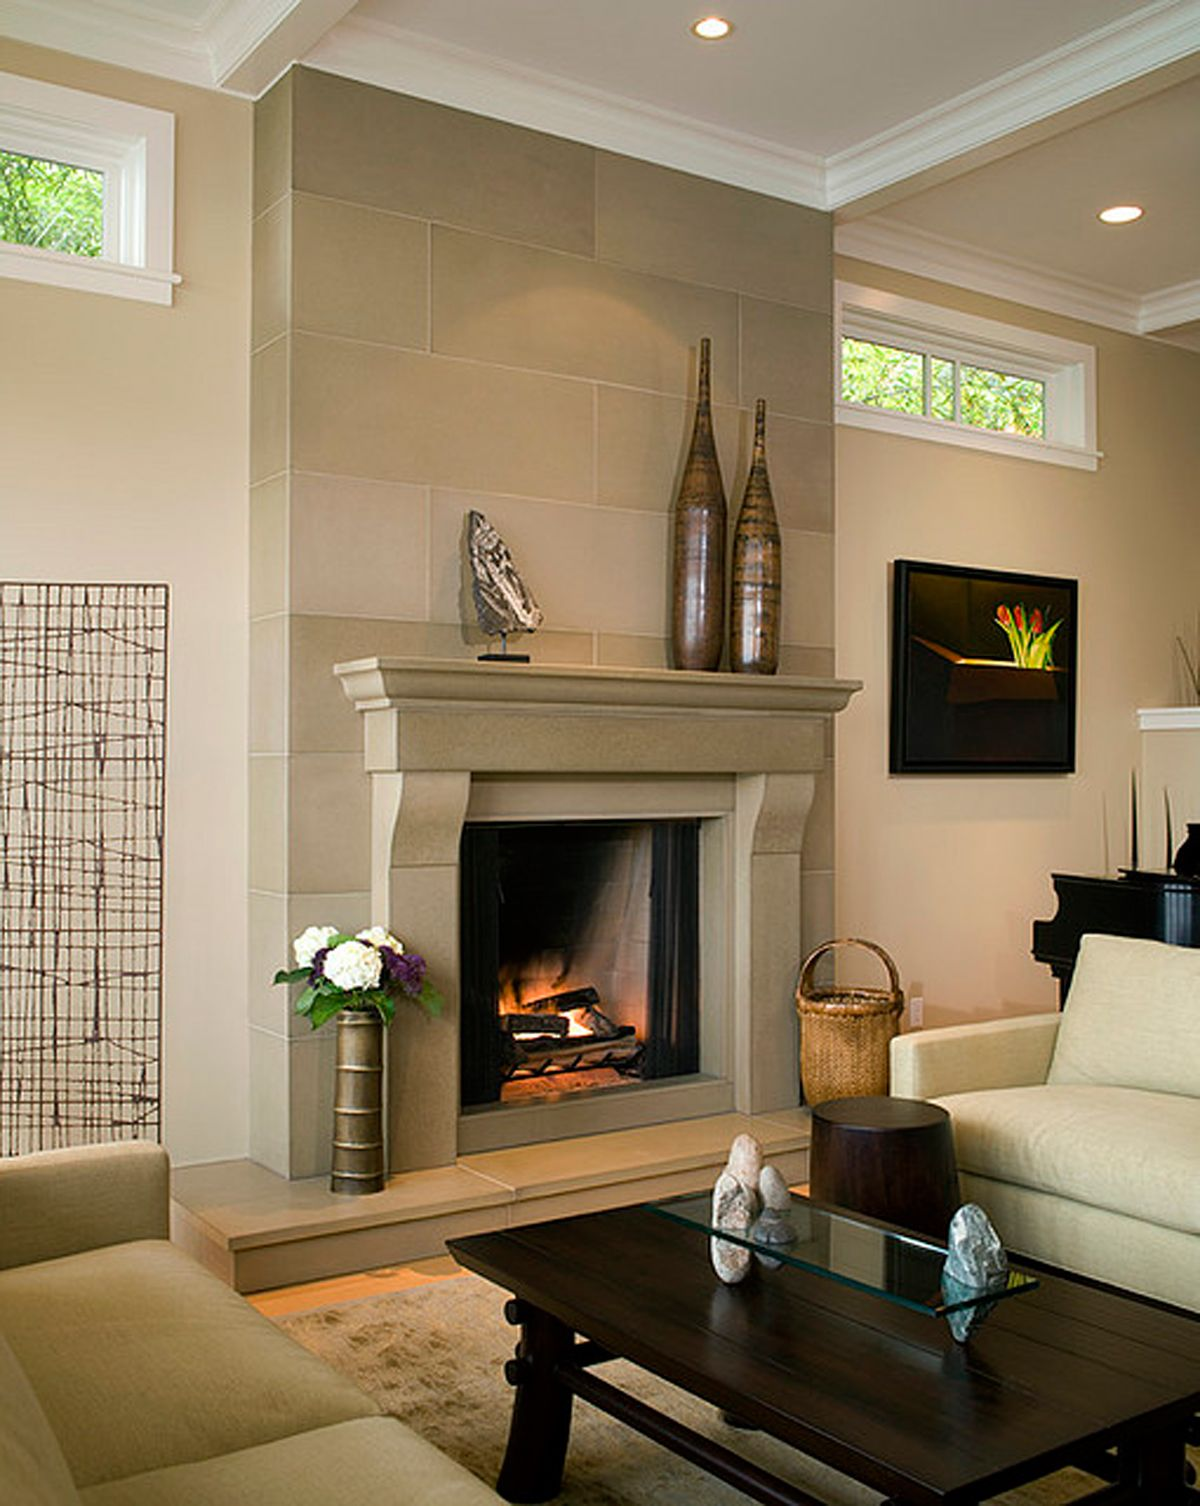 1000+ Images About Fireplace Tile Ideas On Pinterest | Fireplace